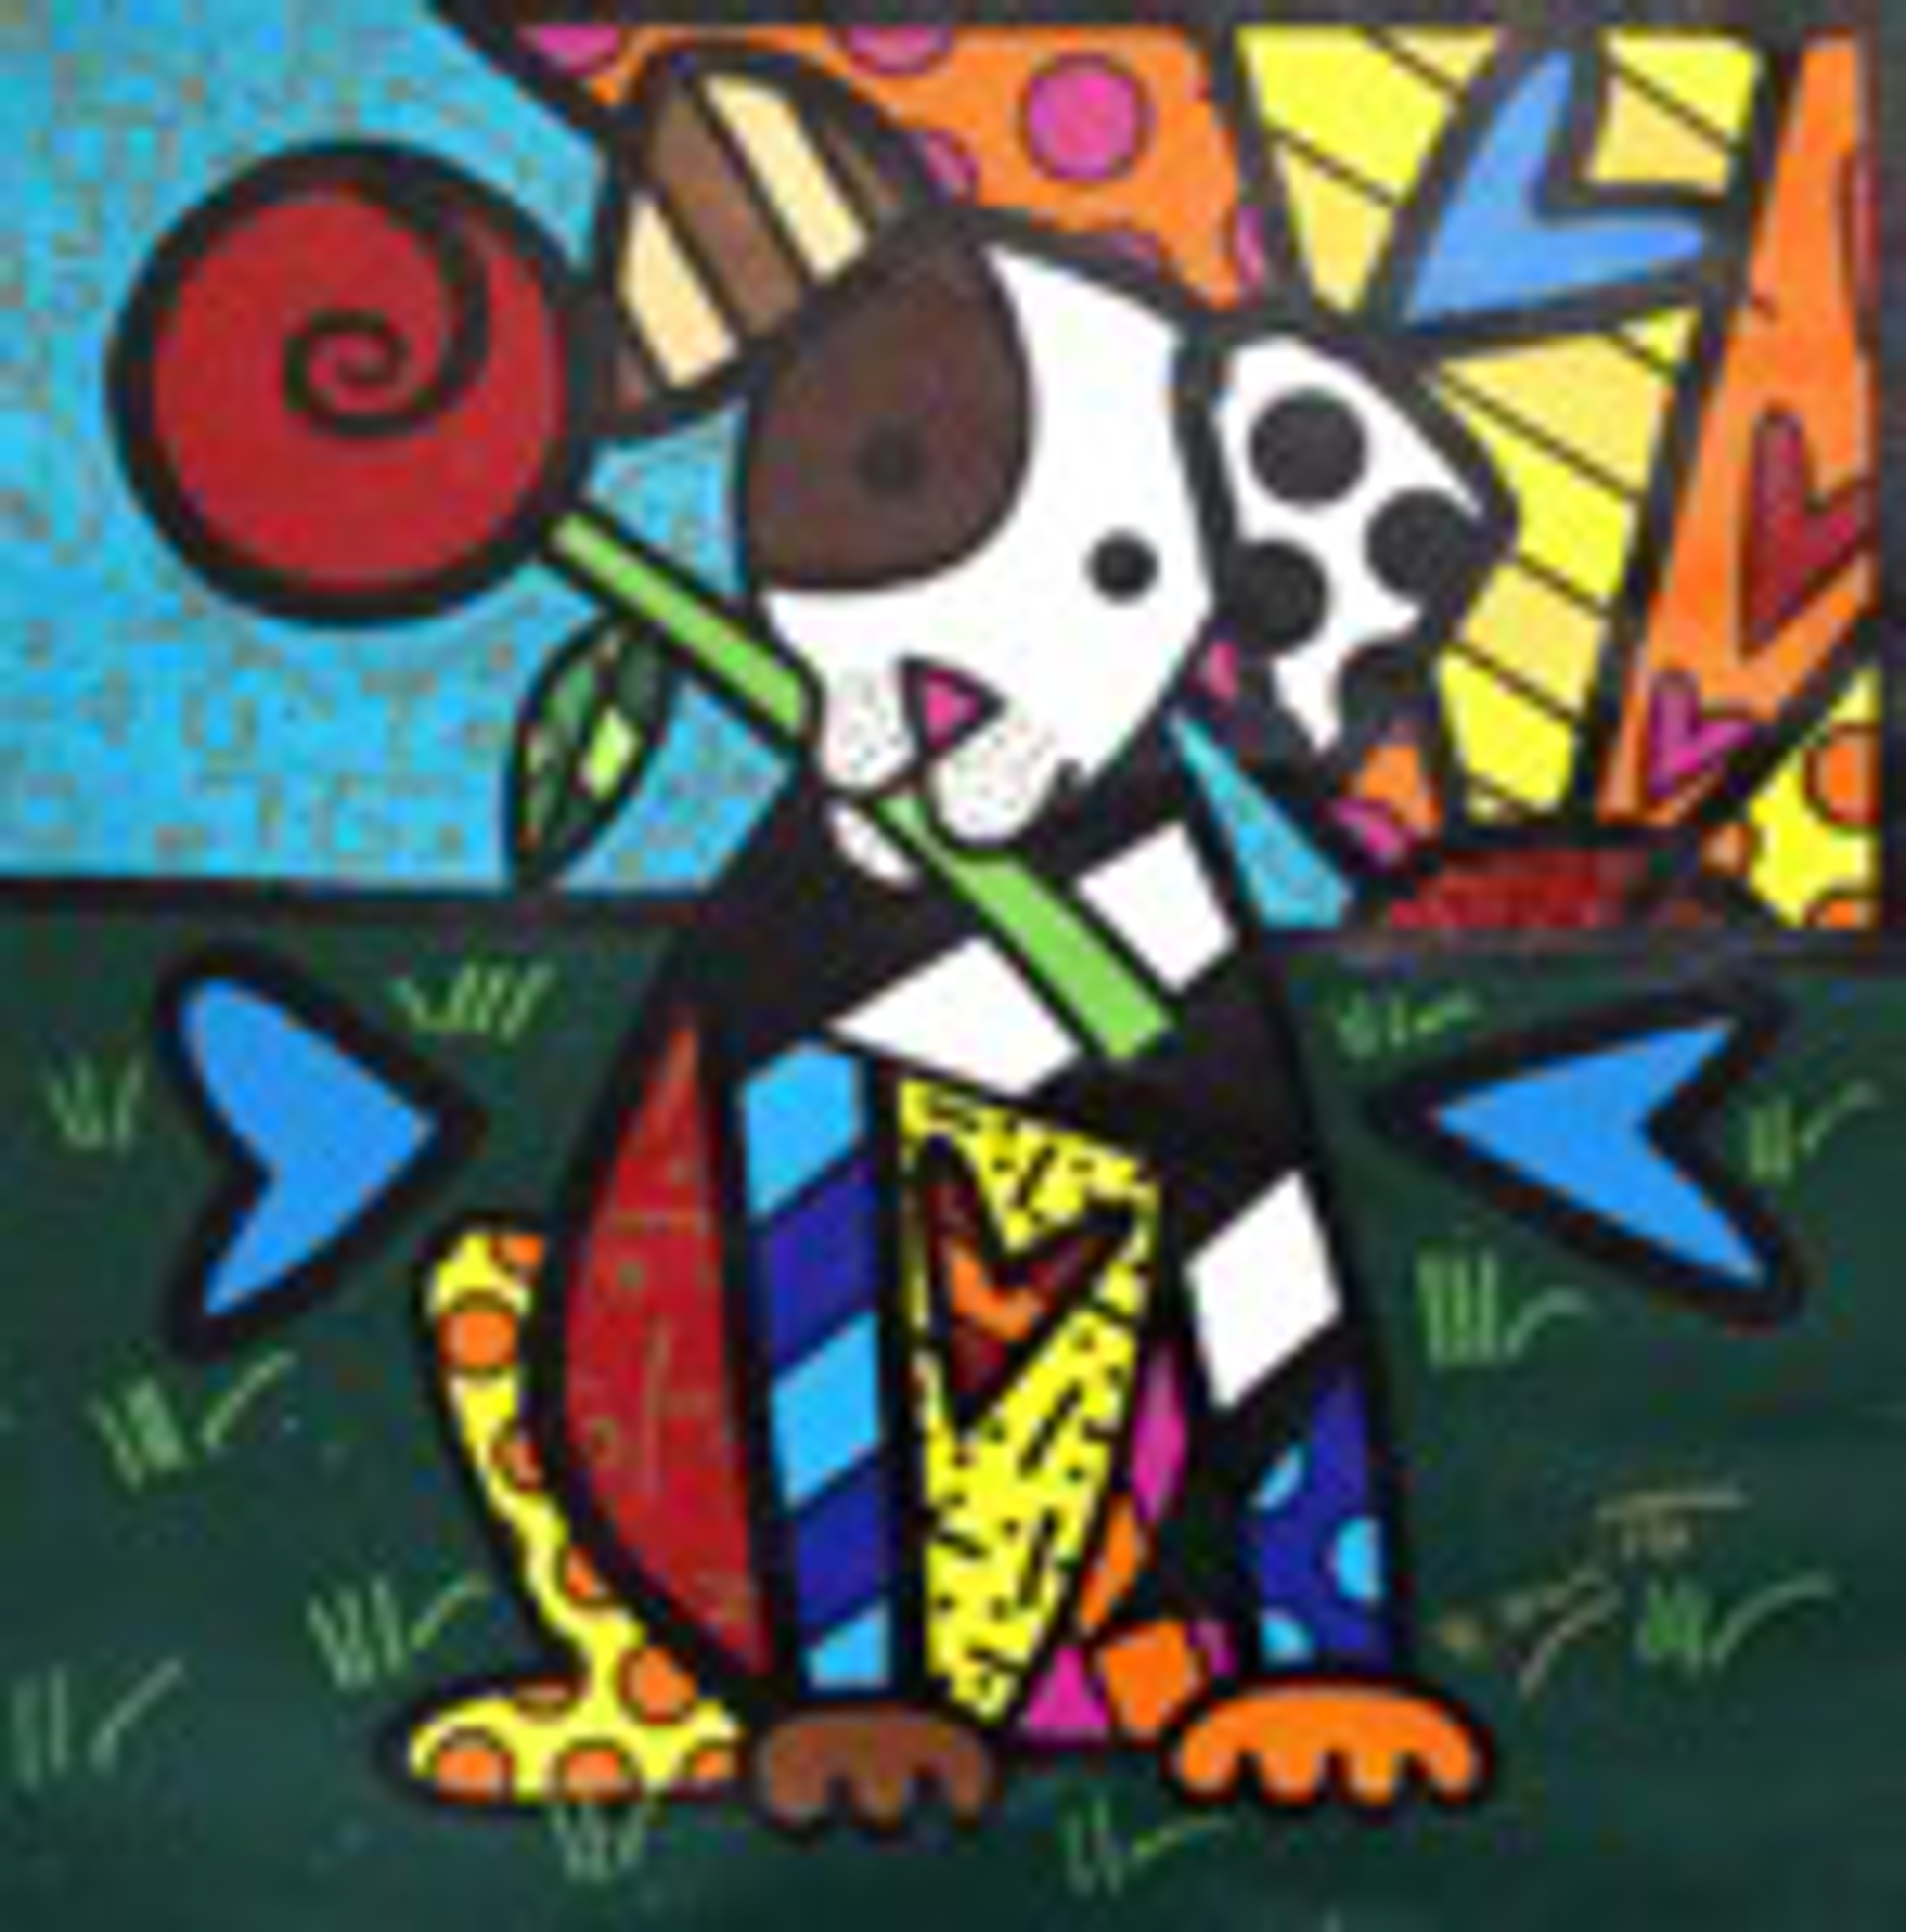 PUPPY LOVE by Romero Britto